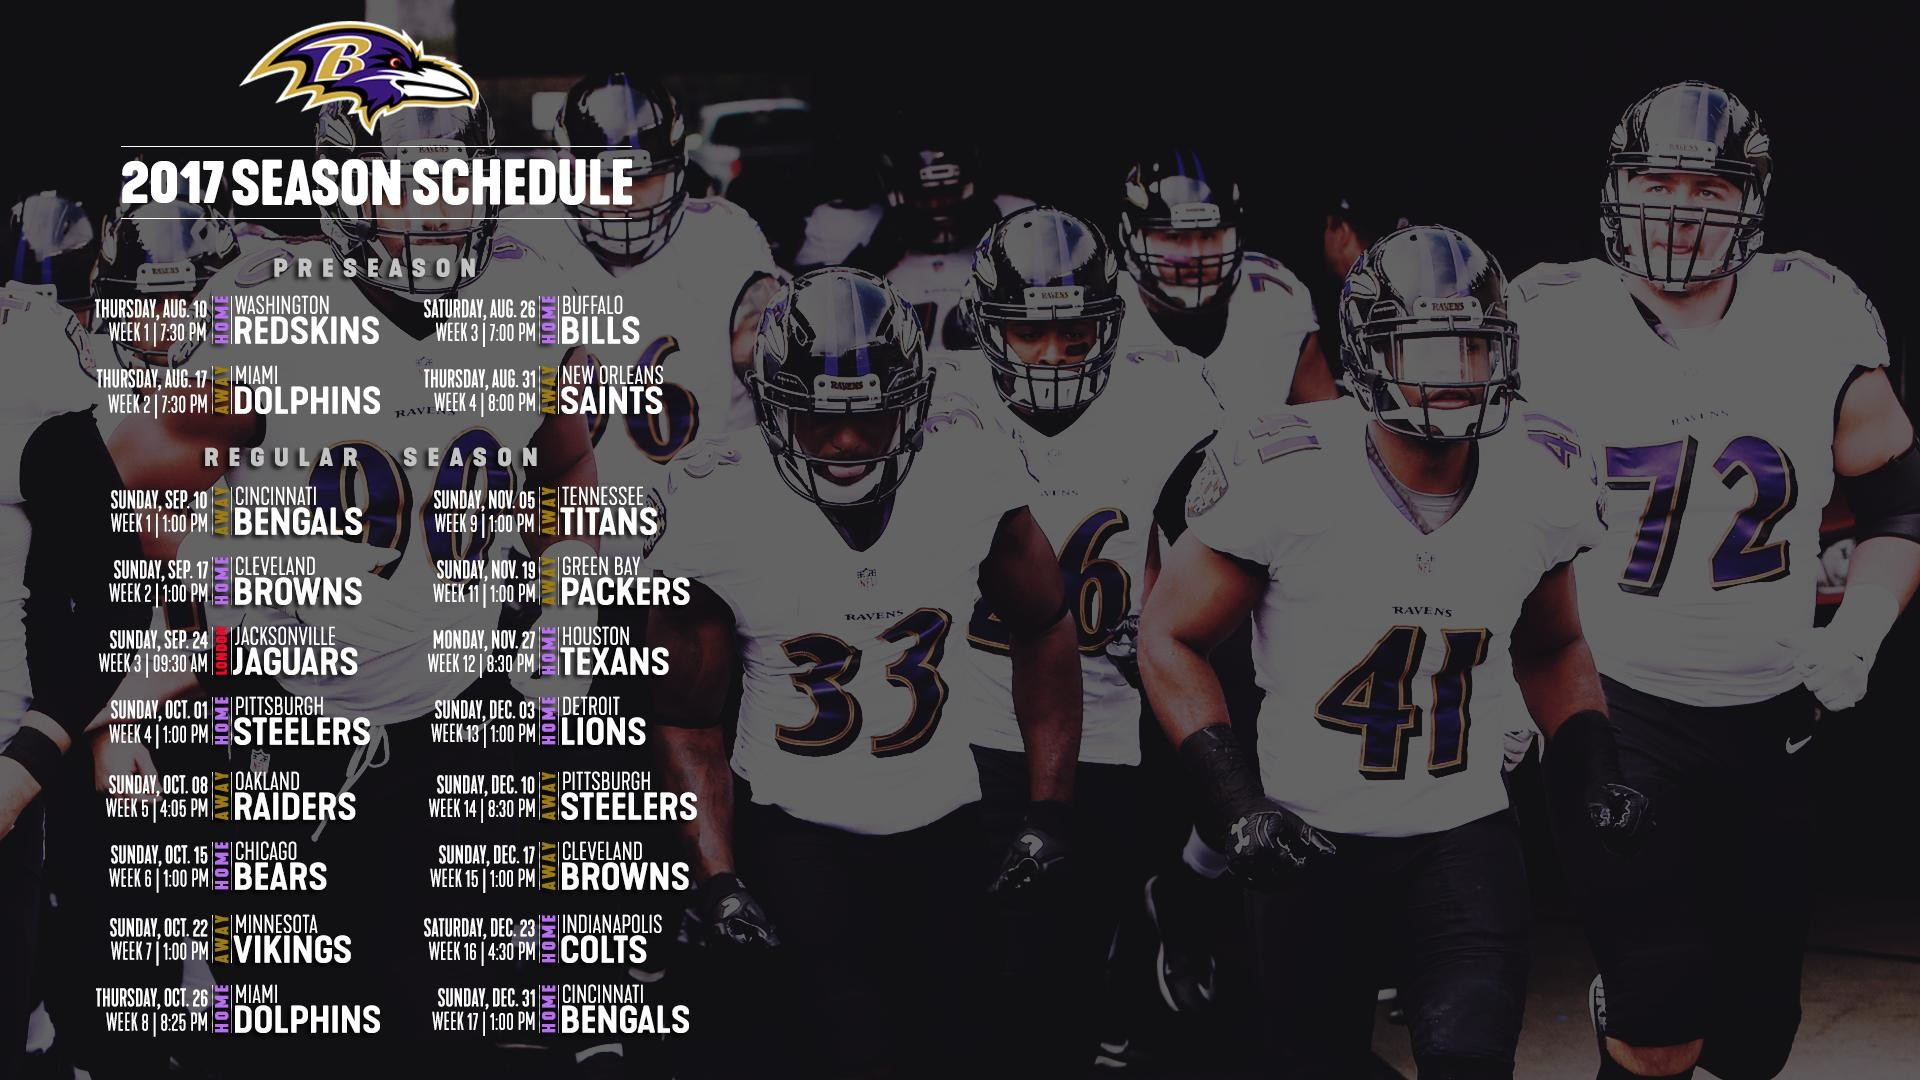 New Orleans Saints Iphone Wallpaper Cleveland Browns Schedule 2018 Wallpaper 73 Images